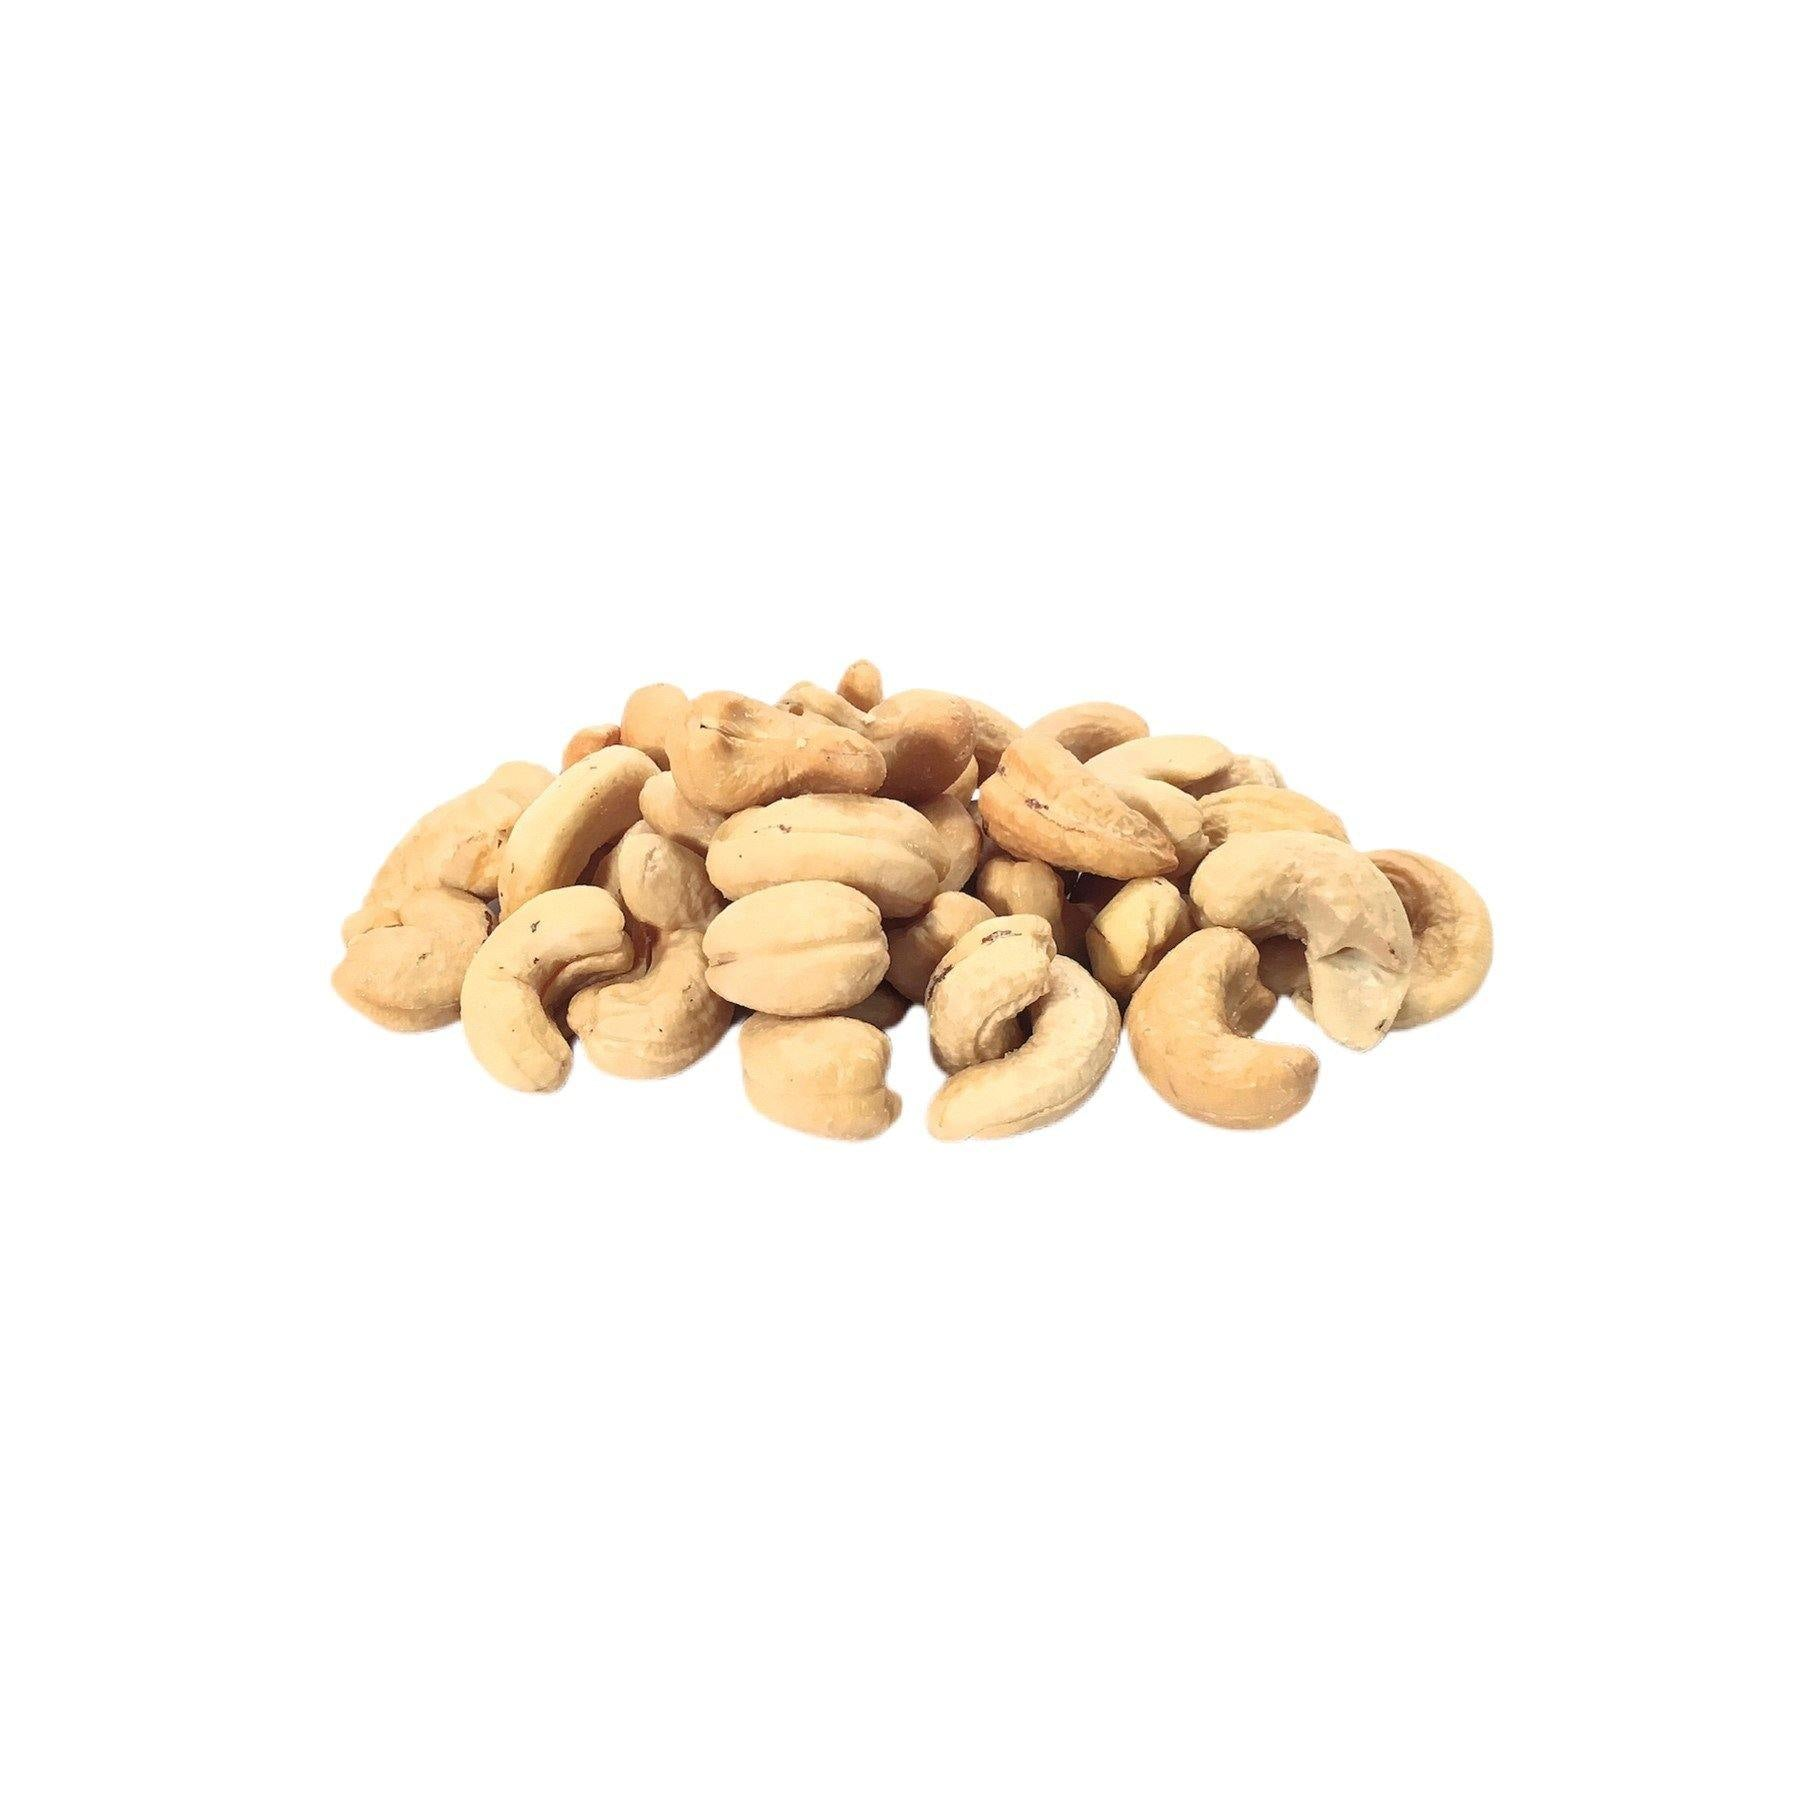 Salted Cashews - The Dormen Food Company